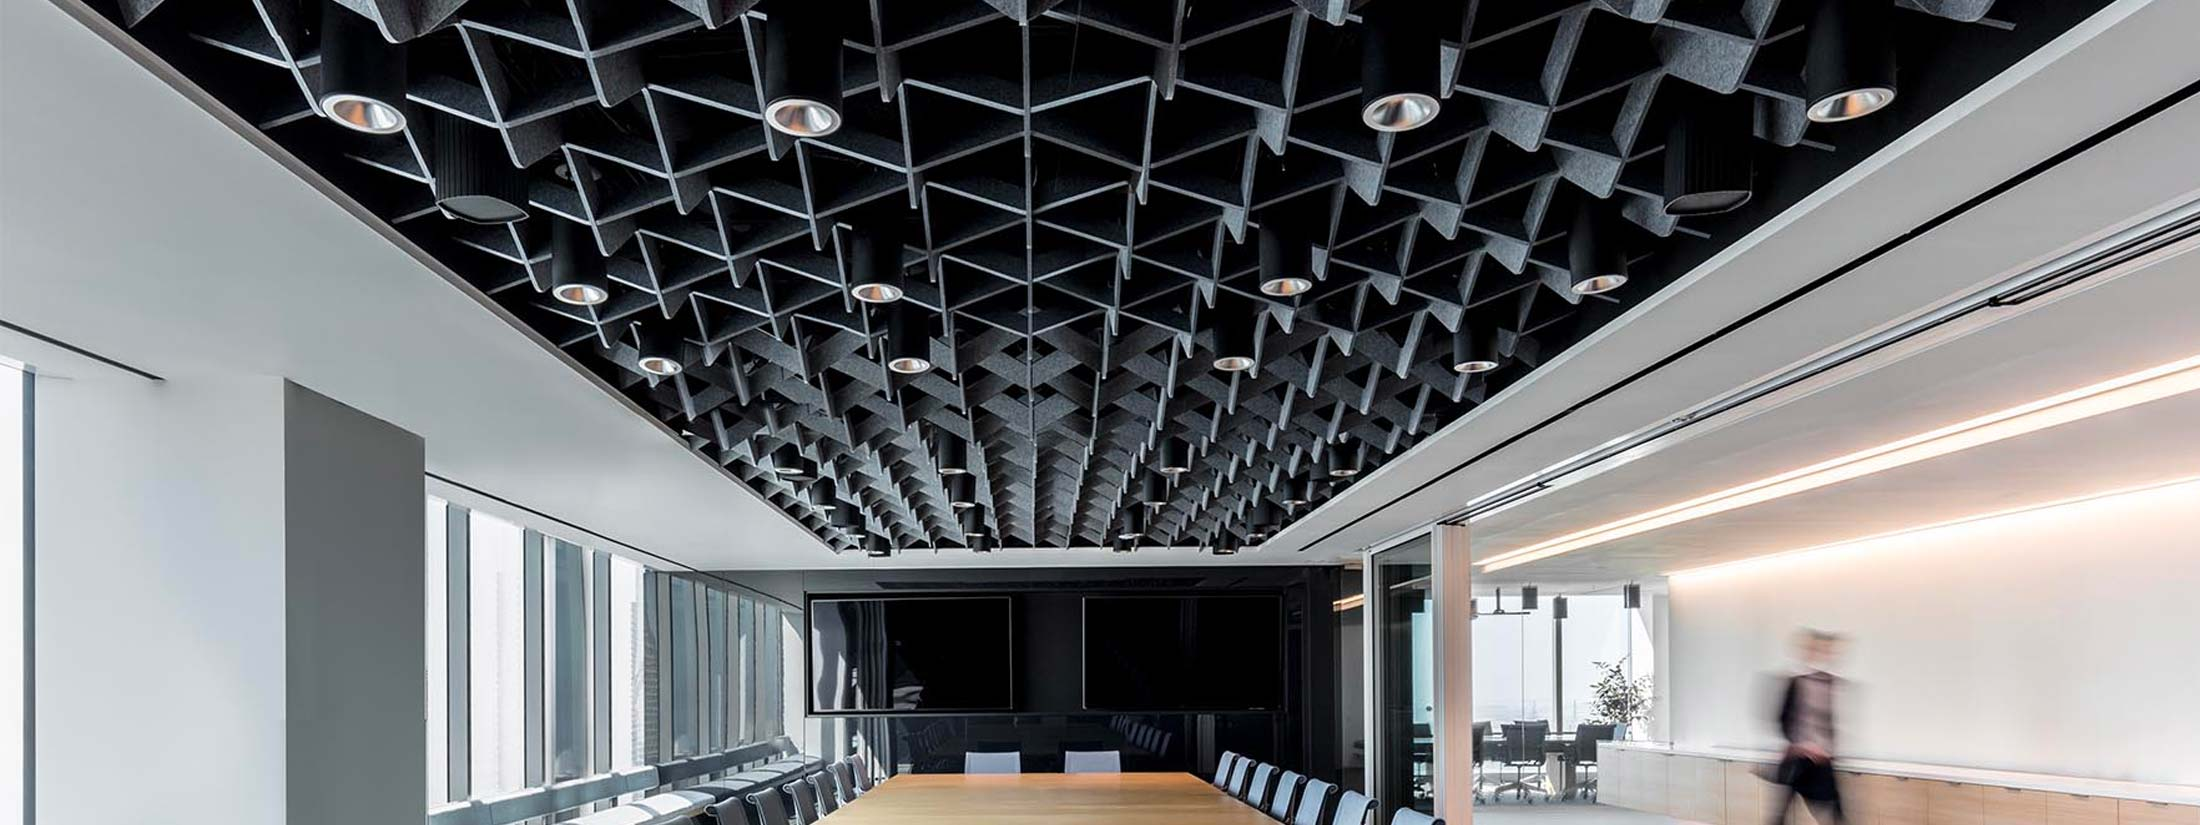 SoftGrid Wave Ceiling System by Arktura